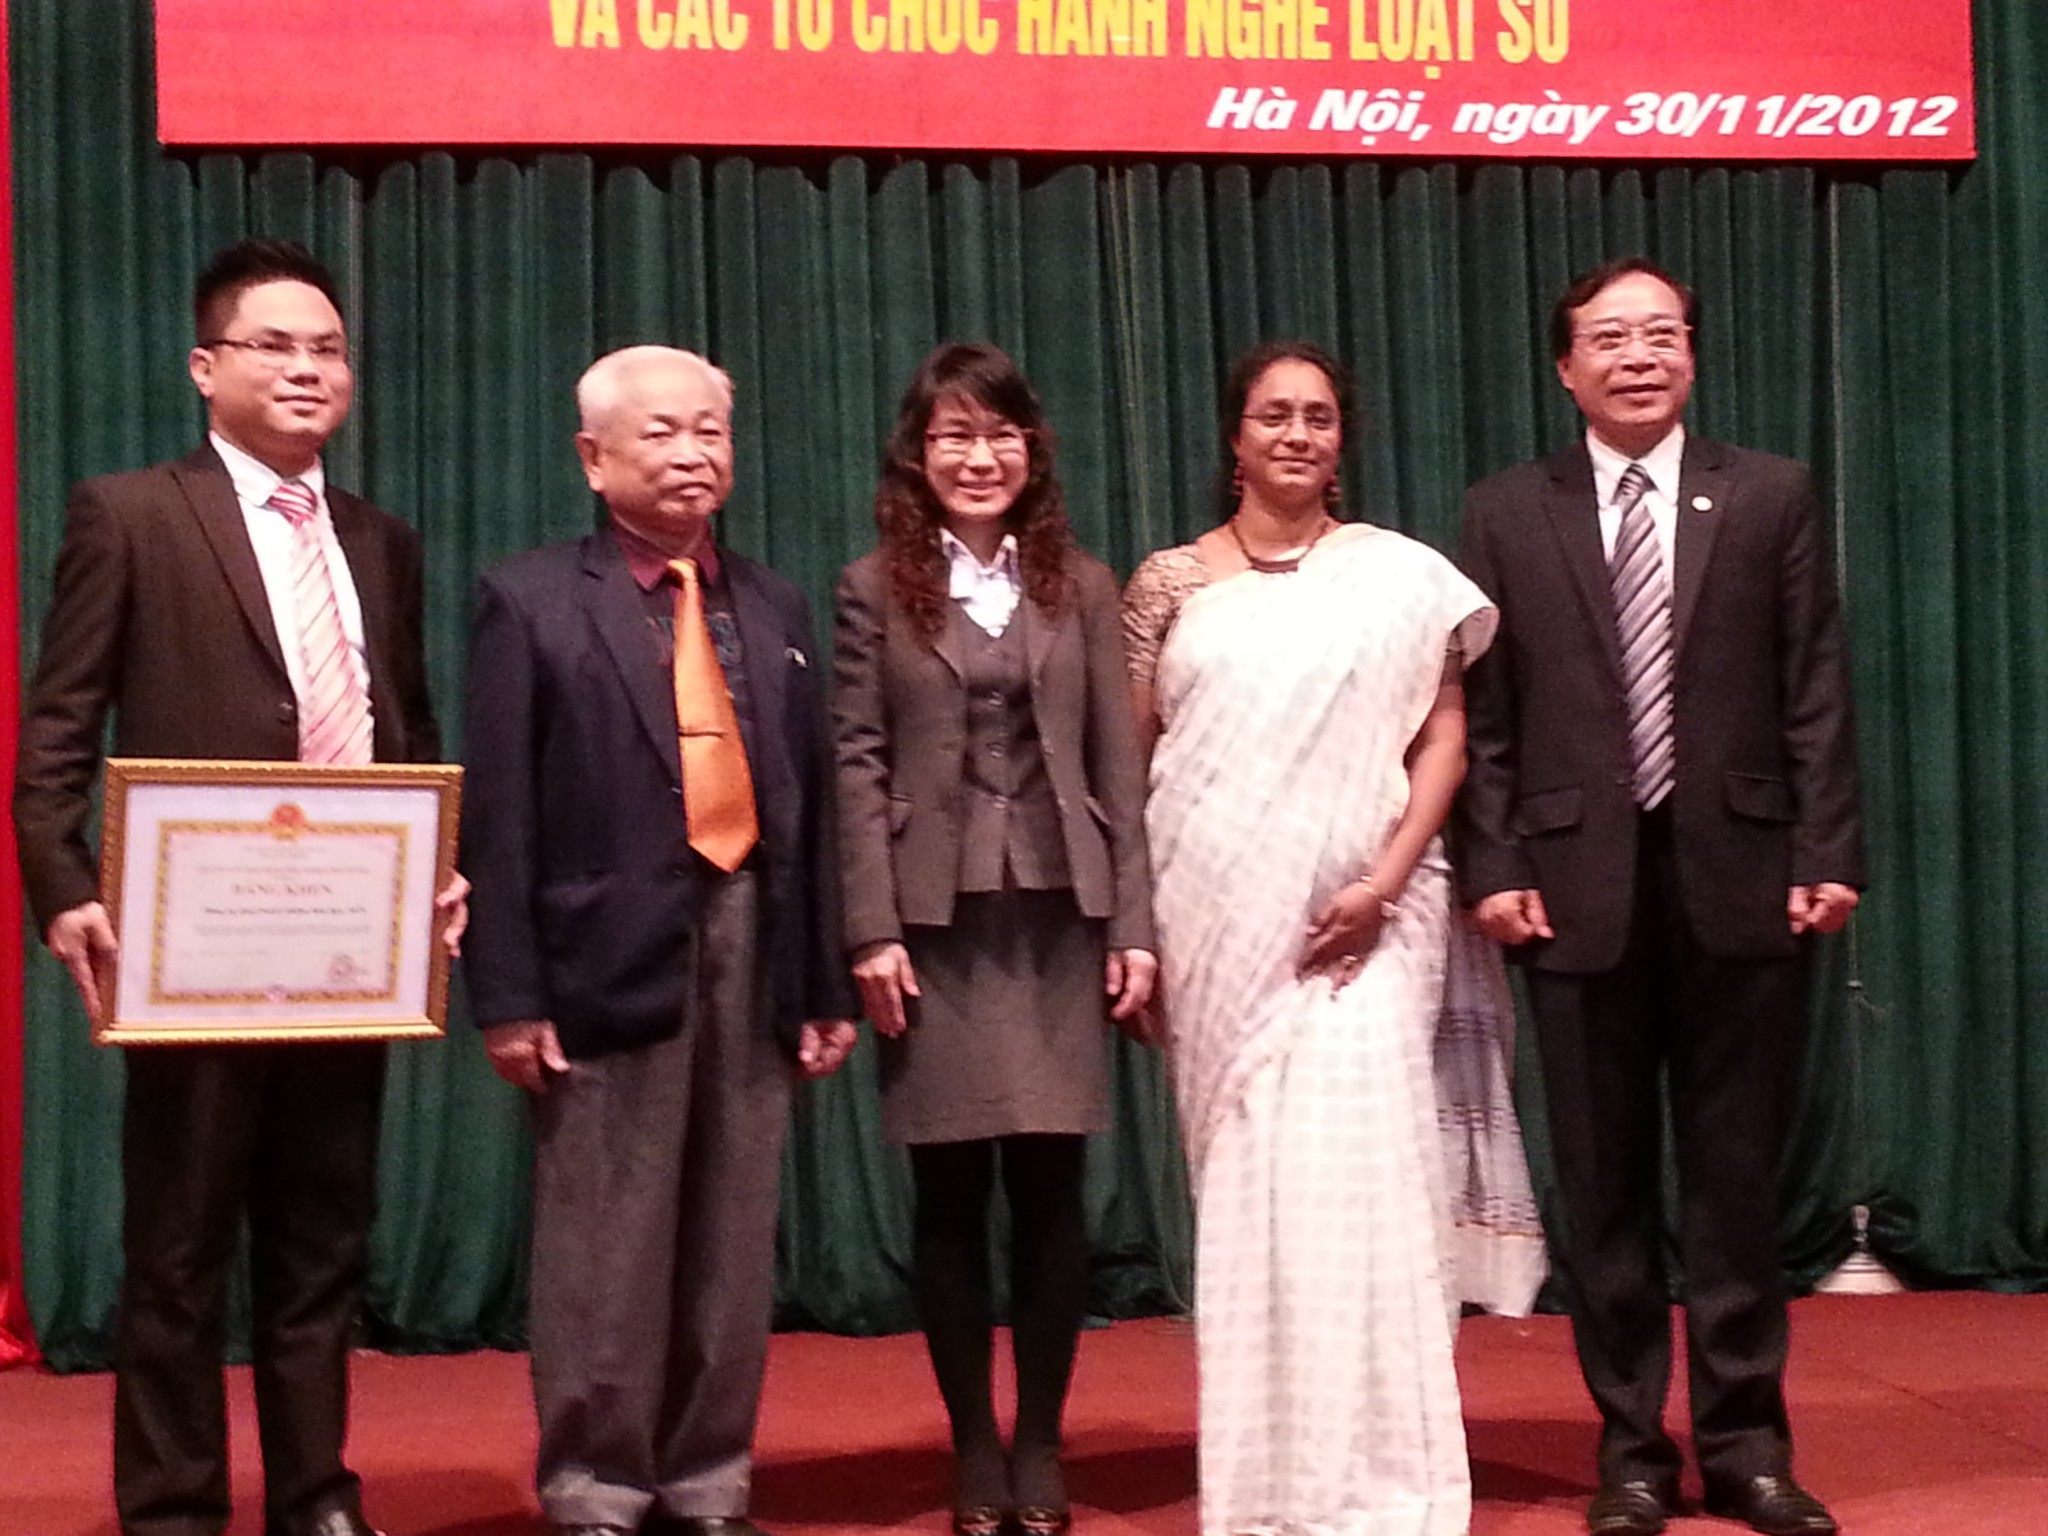 Receiving award from chairman of Hanoi